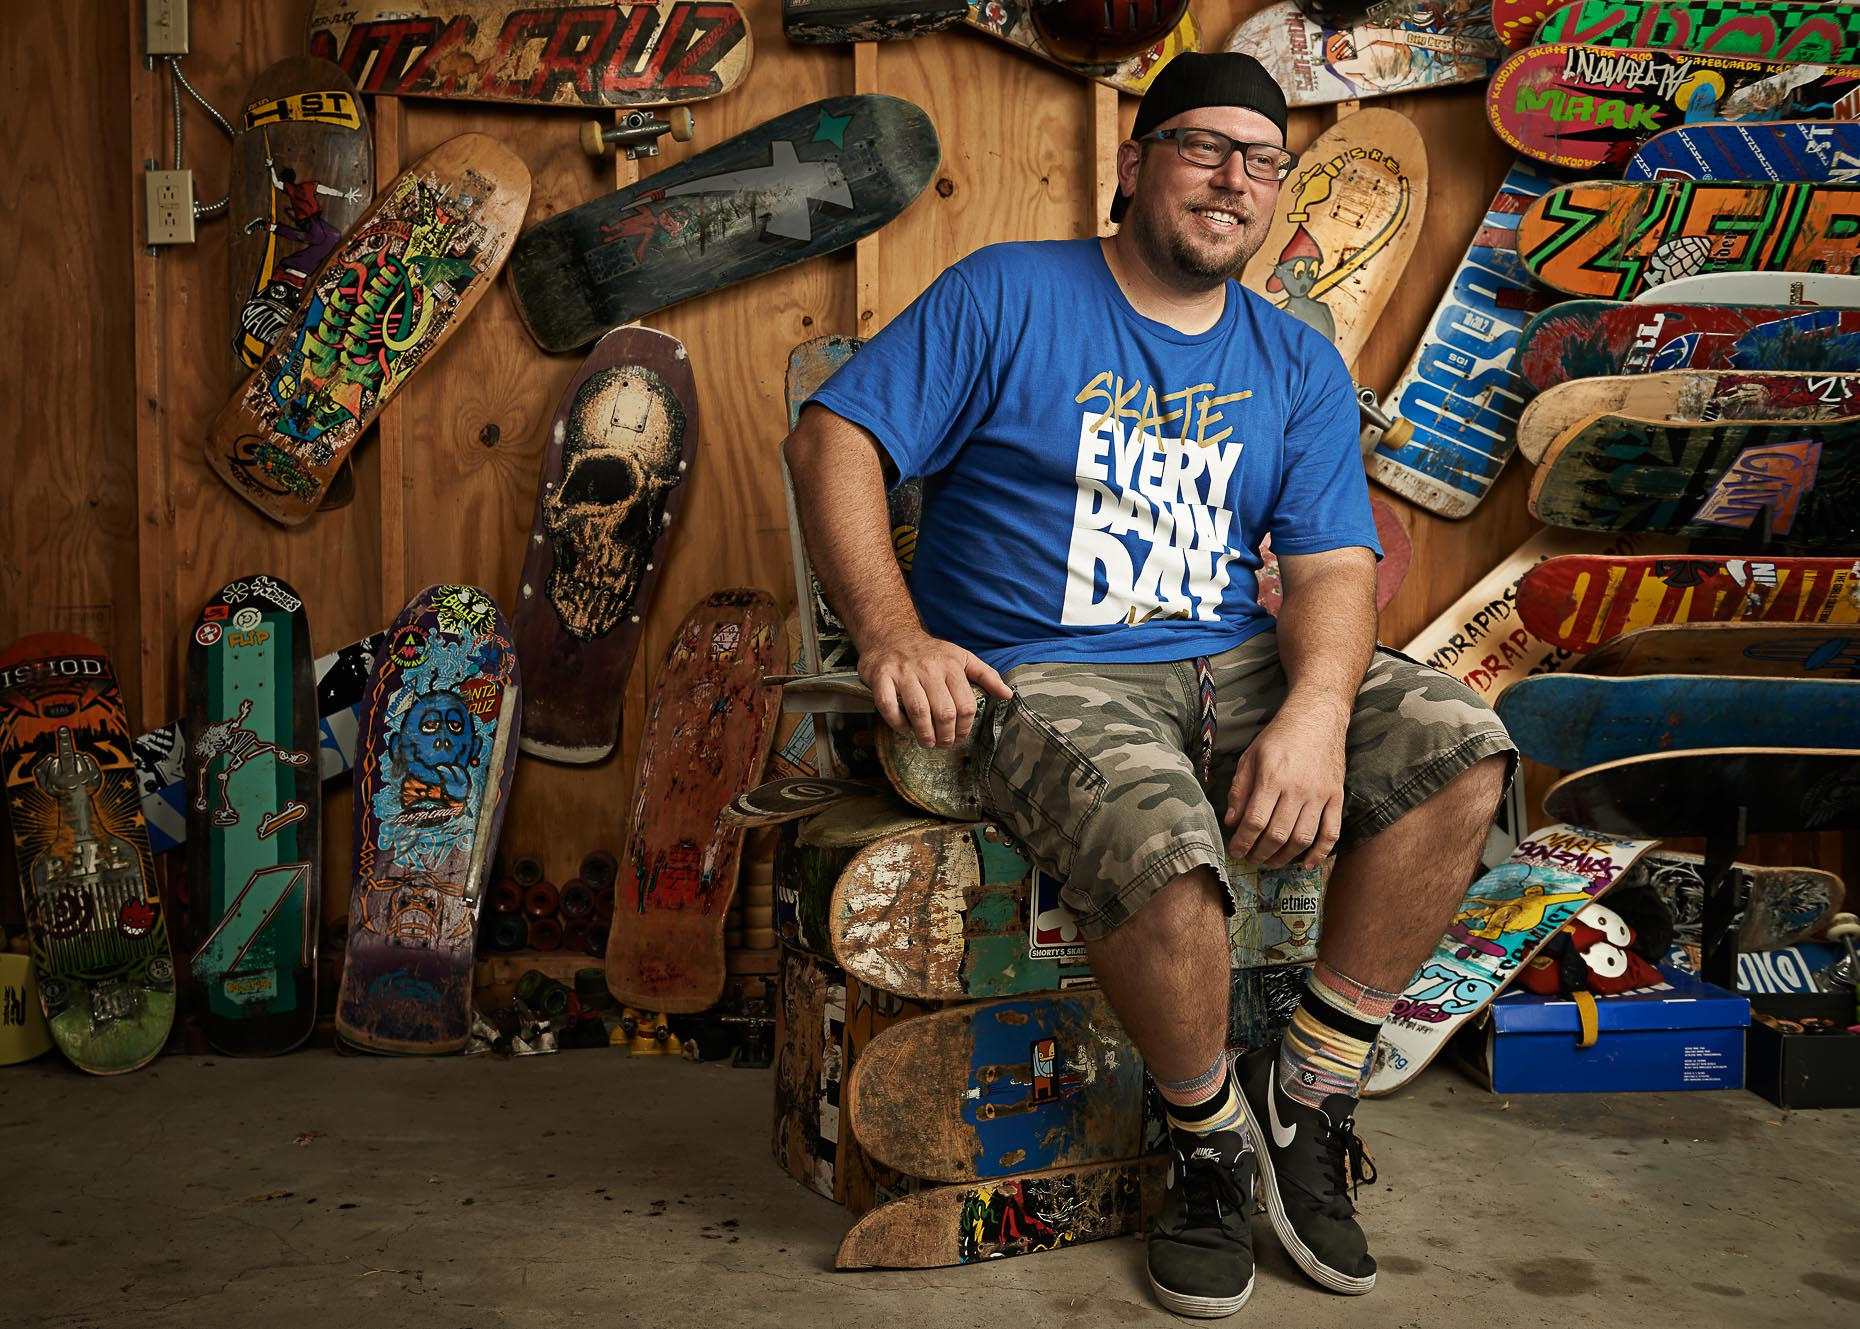 Skateboarder Brian Blancho sitting on a throne of broken skateboards